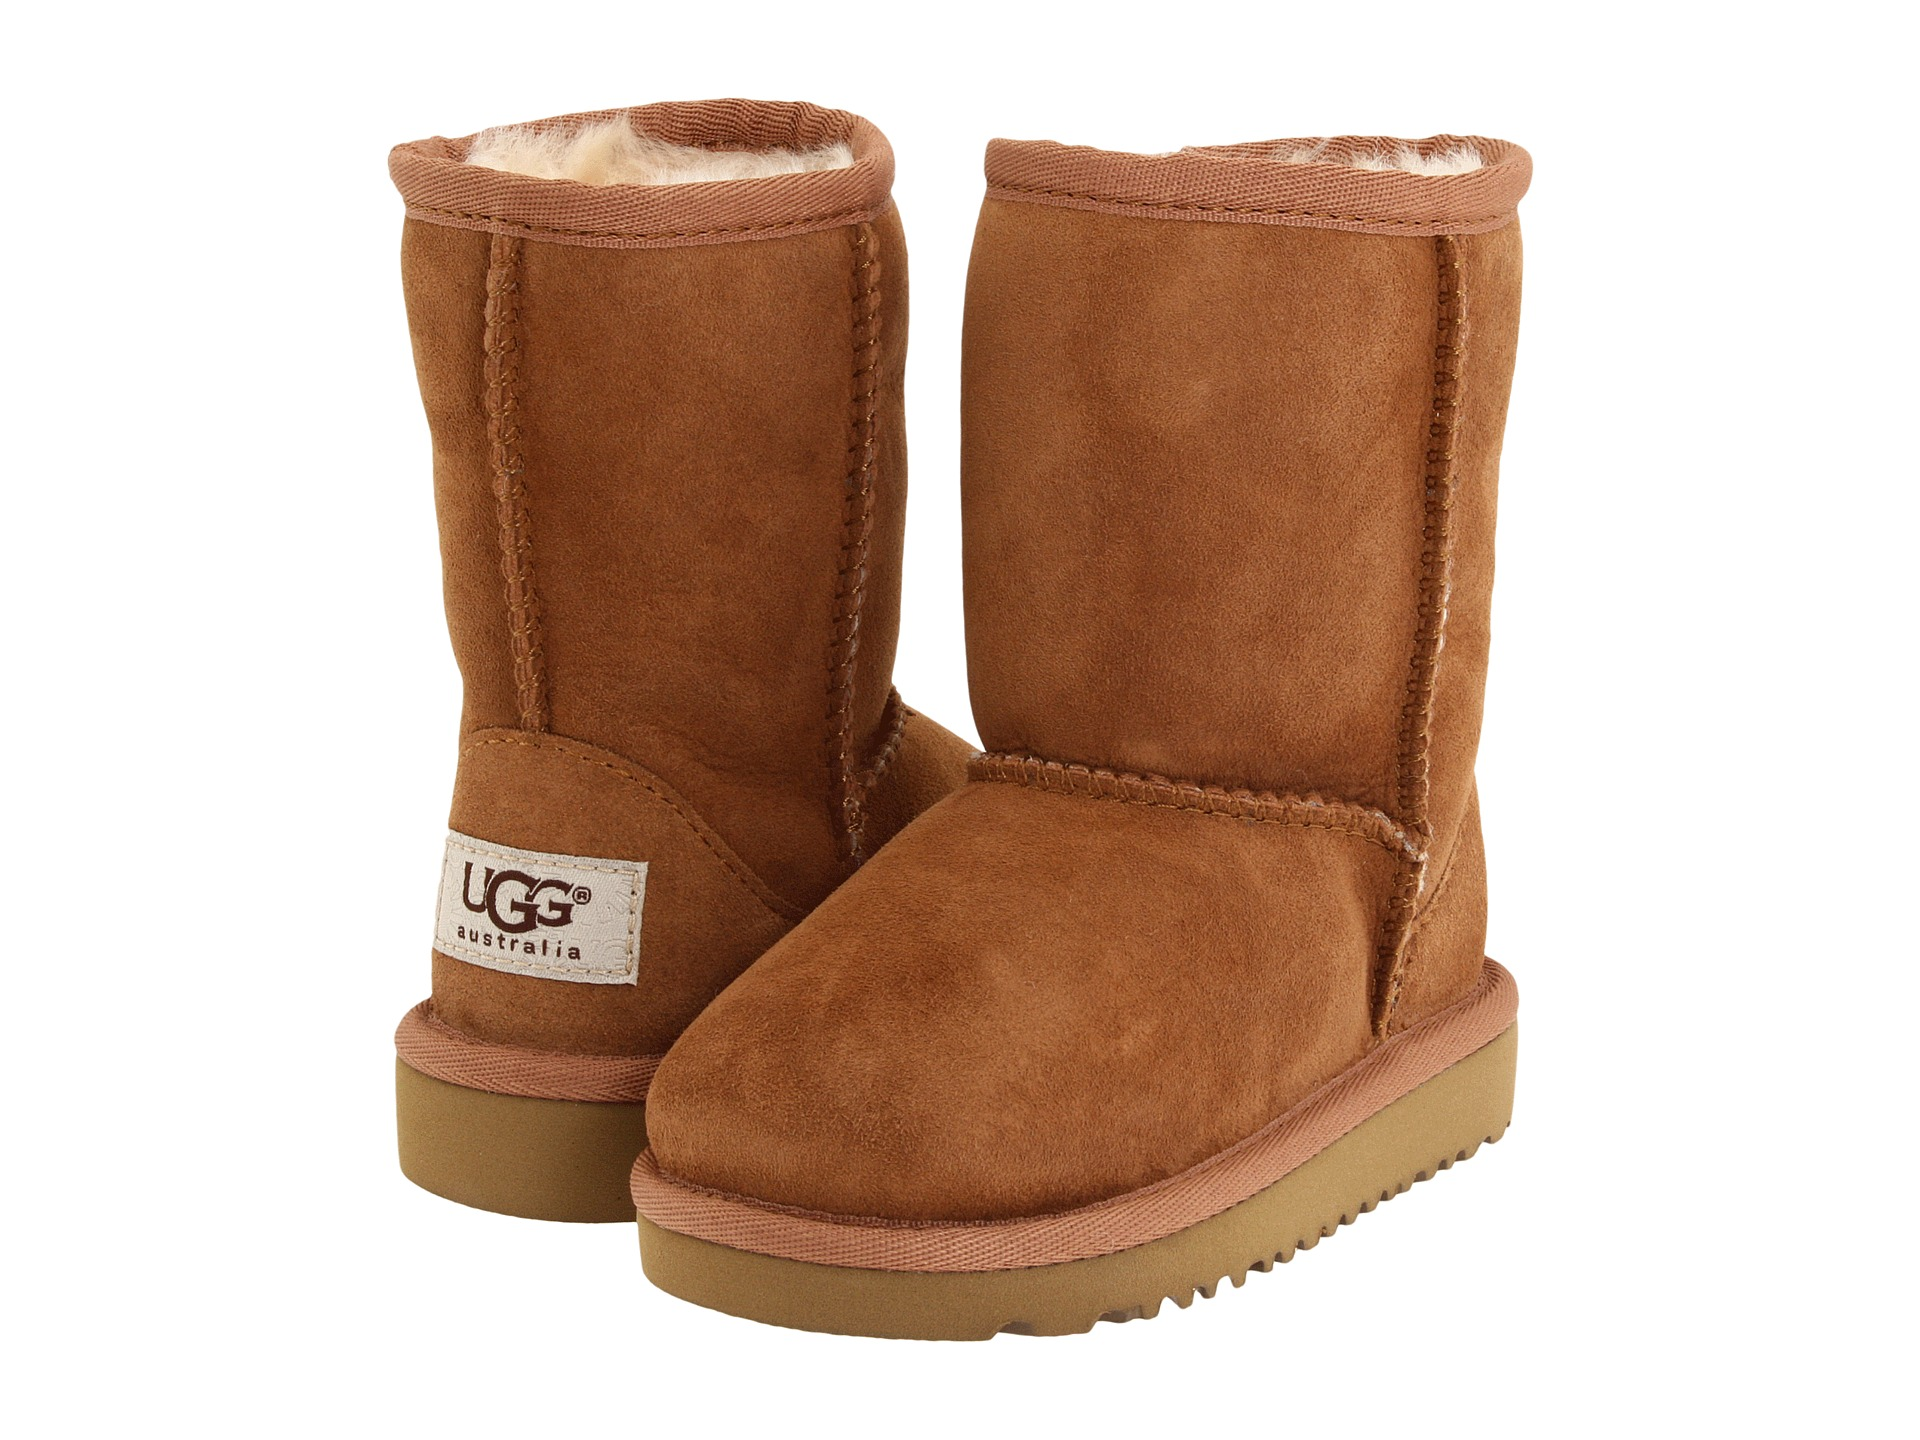 Today, the UGG Kids Collection flaunts the same style and comfort offered in the adult line. From slippers to boots to casual footwear, UGG Kids will pamper the feet of your infant, toddler or big kid.